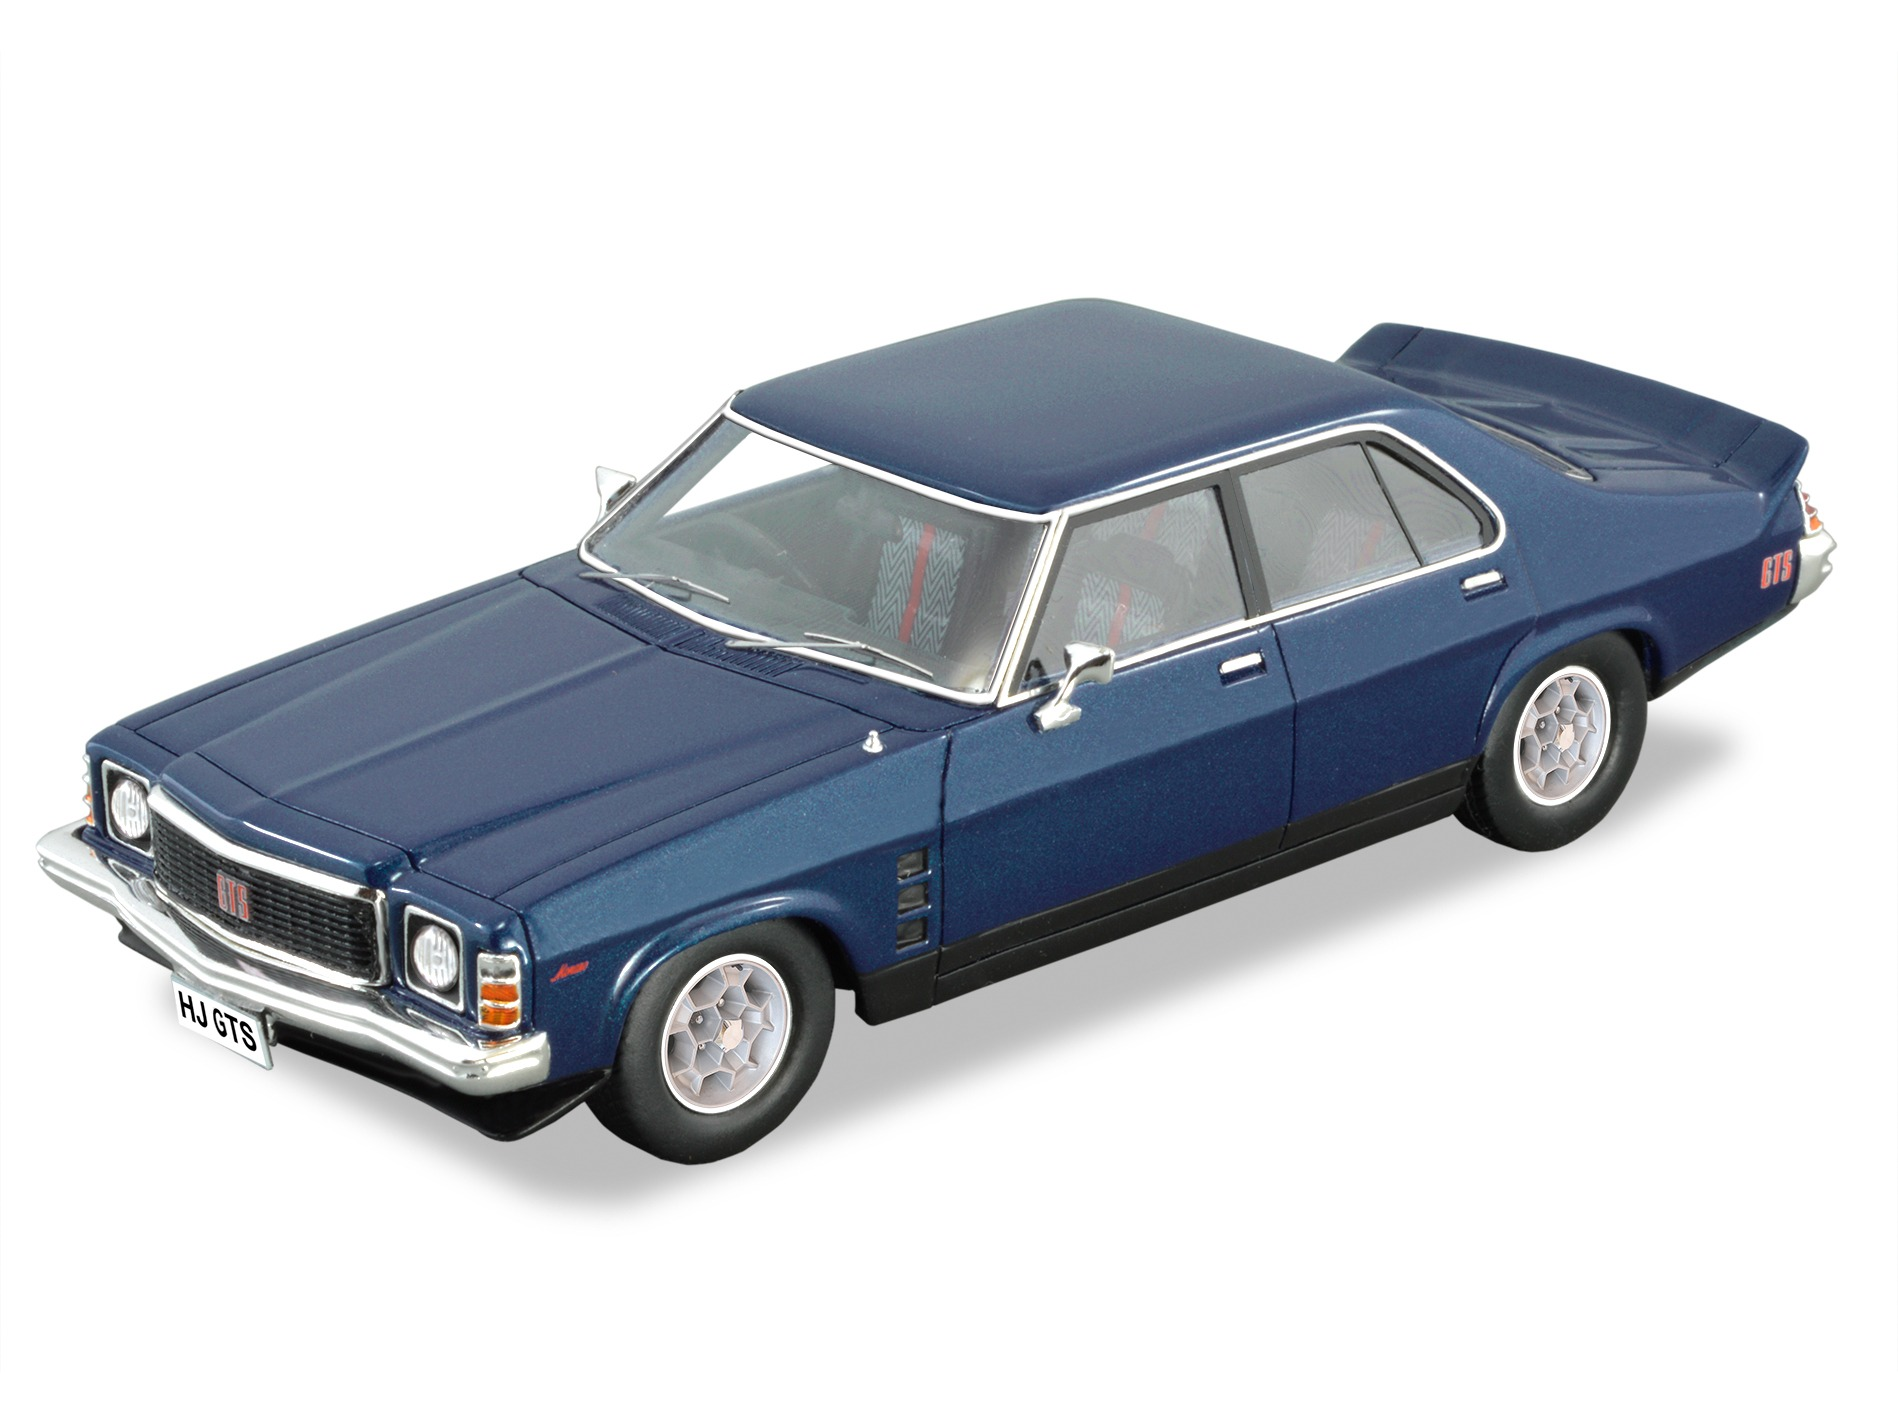 1975 Holden HJ Monaro GTS Sedan – Blue